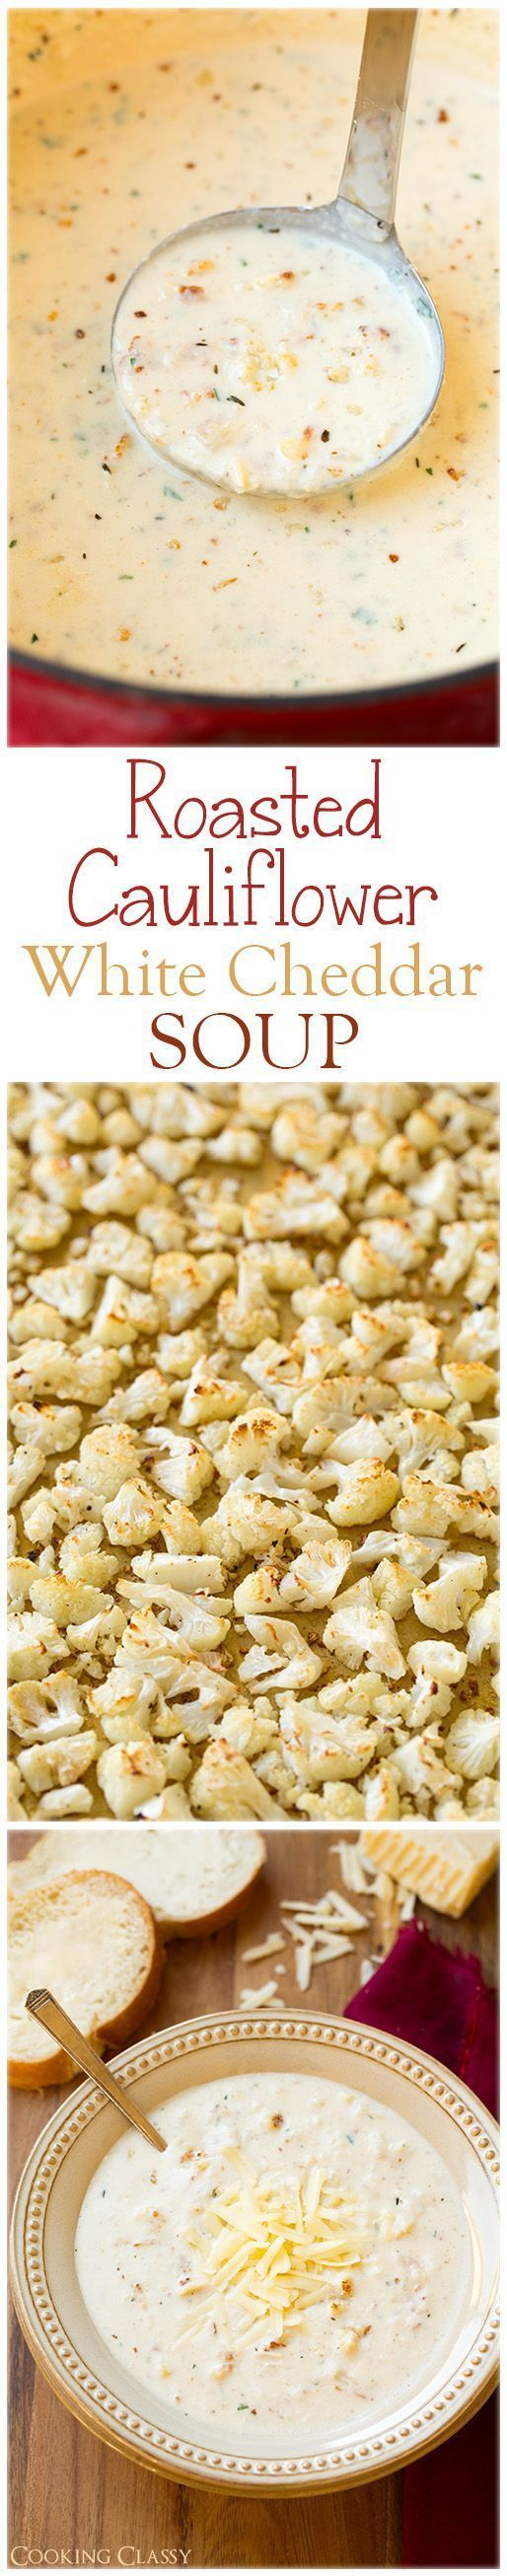 Roasted Cauliflower White Cheddar Soup - this soup is AMAZING! So full of delicious flavors.